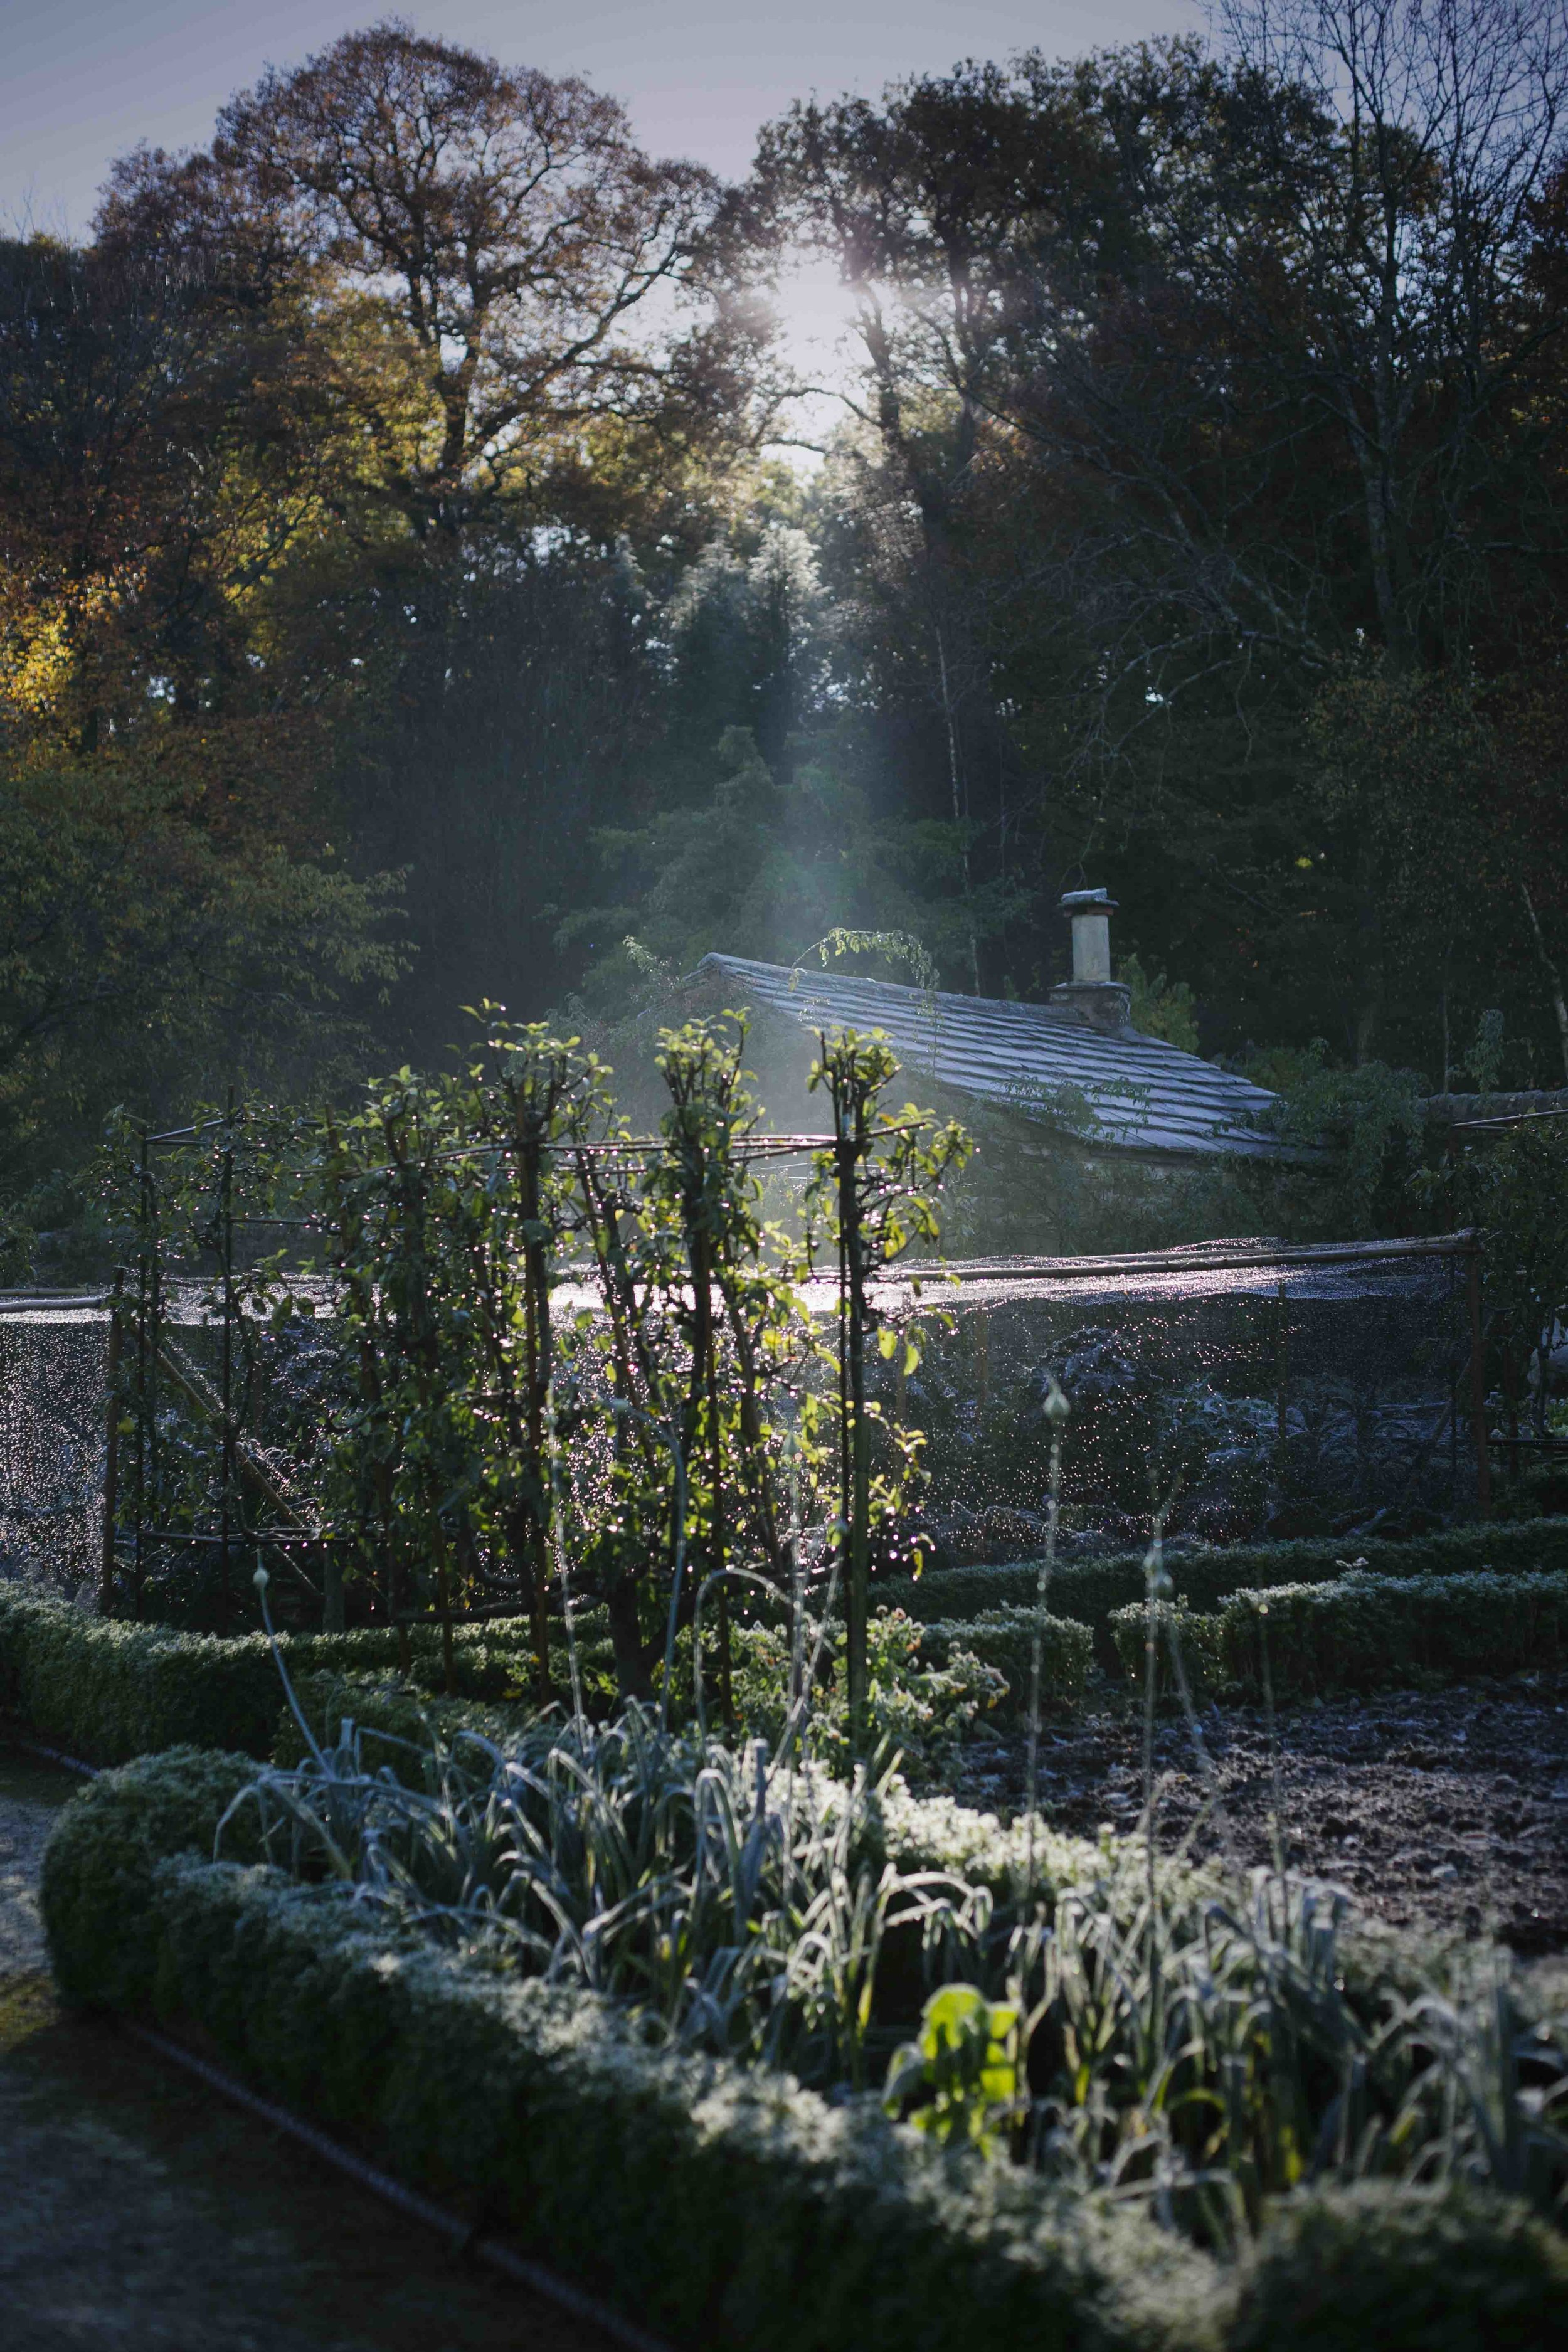 Gresgarth_Autumn_16_16.JPG